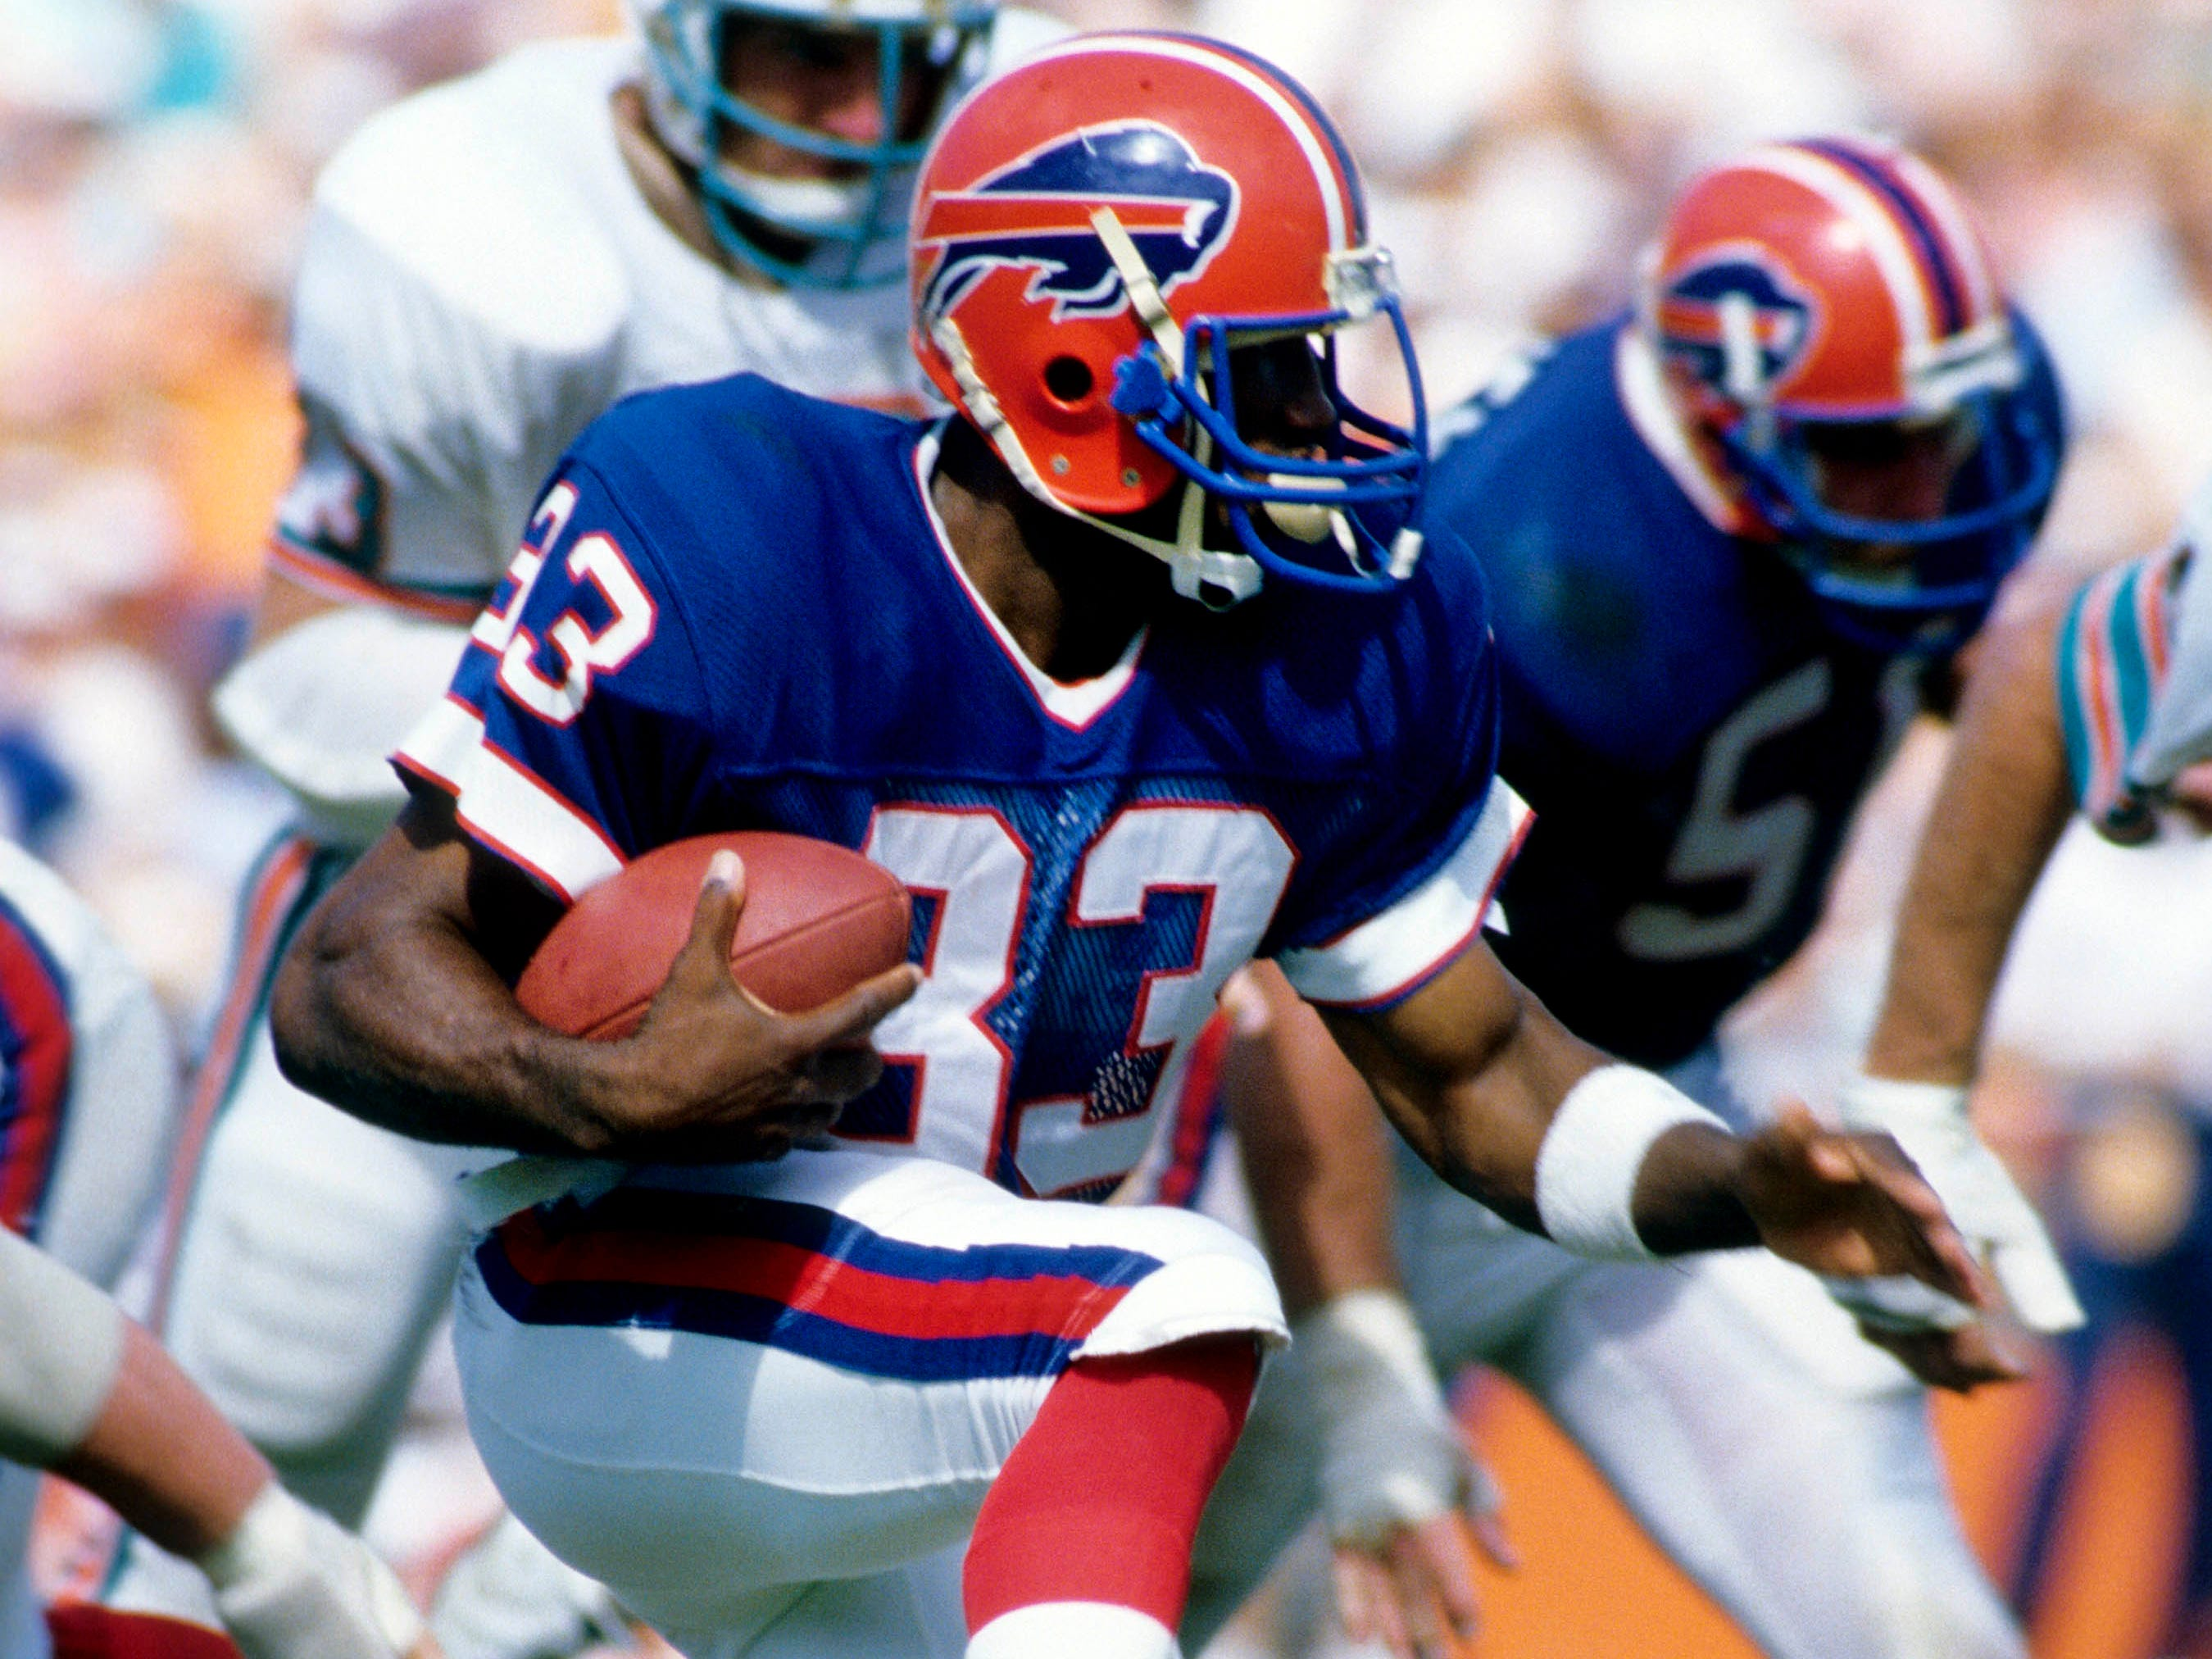 Buffalo Bills rookie running back Ronnie Harmon (33) against the Miami Dolphins in 1986. Harmon, a former Iowa Hawkeye, was the 16th overall pick by the Bills in the 1986 NFL Draft.